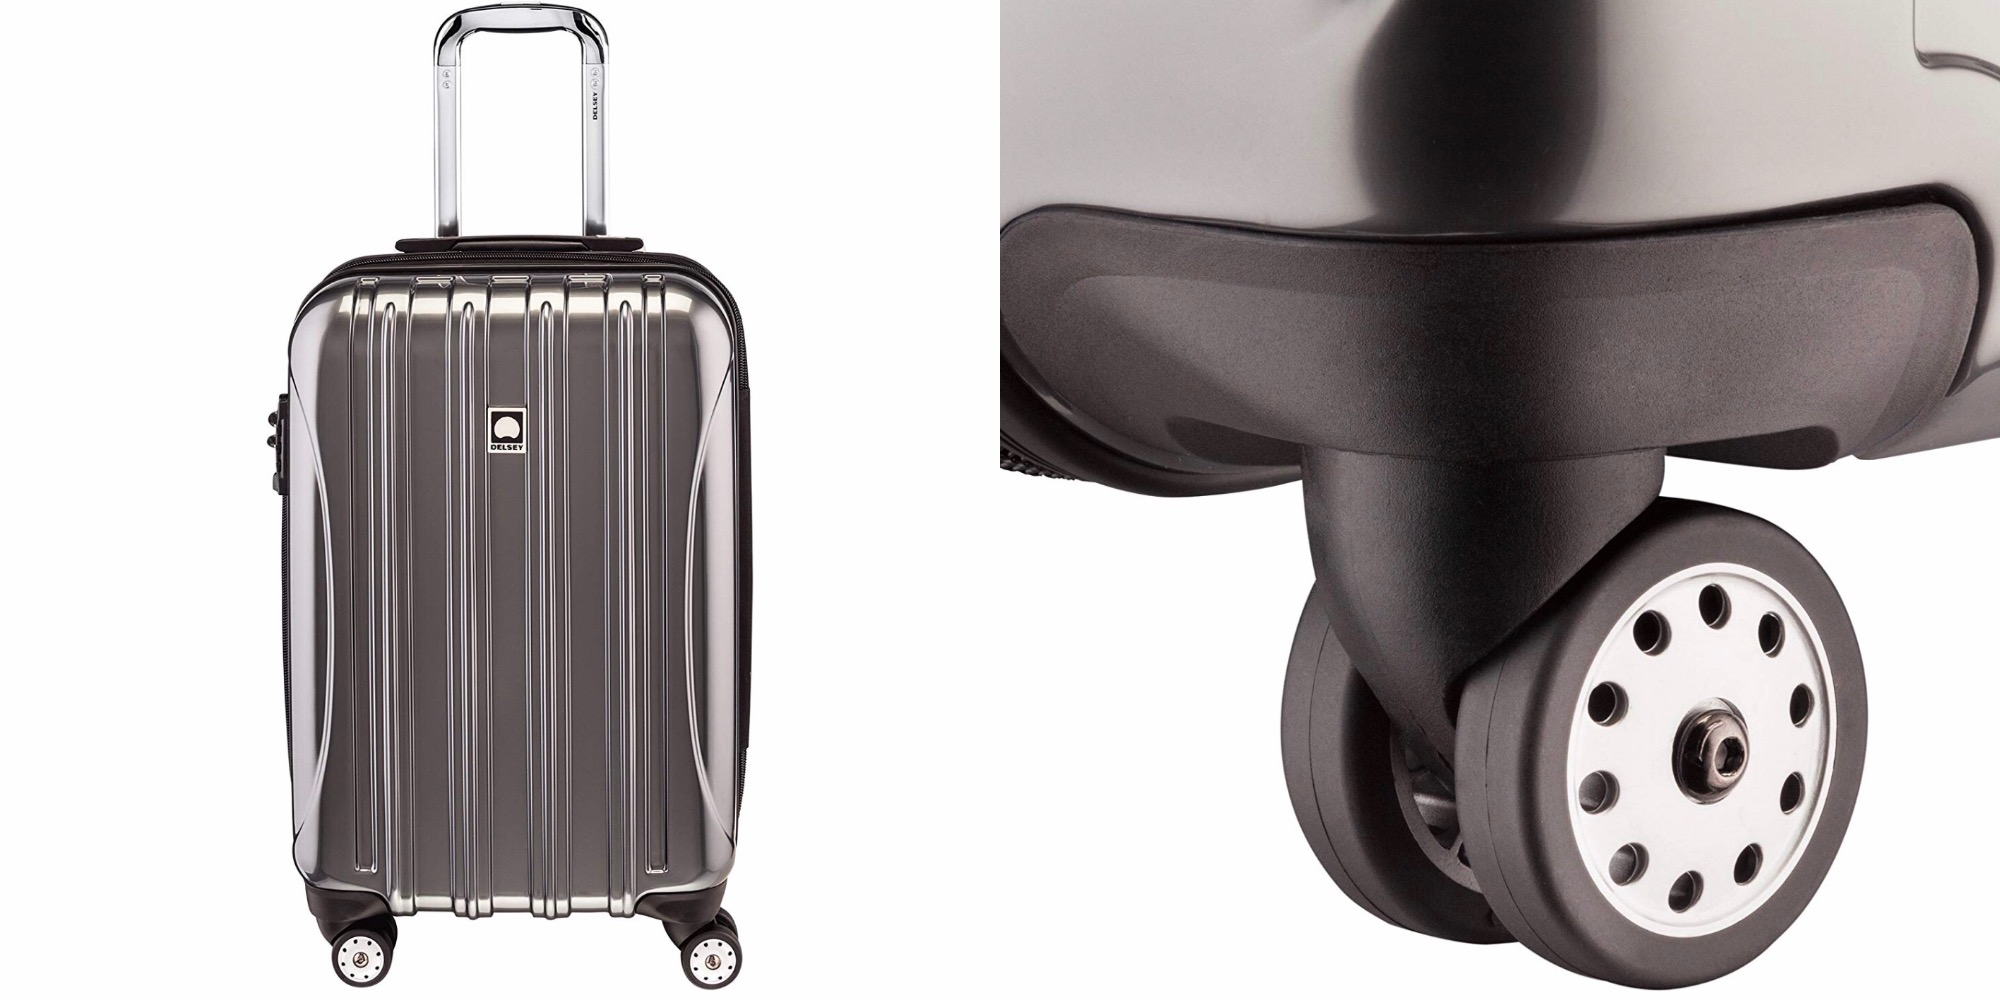 Delsey's Carry-On Spinner Luggage can be yours for $60, today only ($30 off)